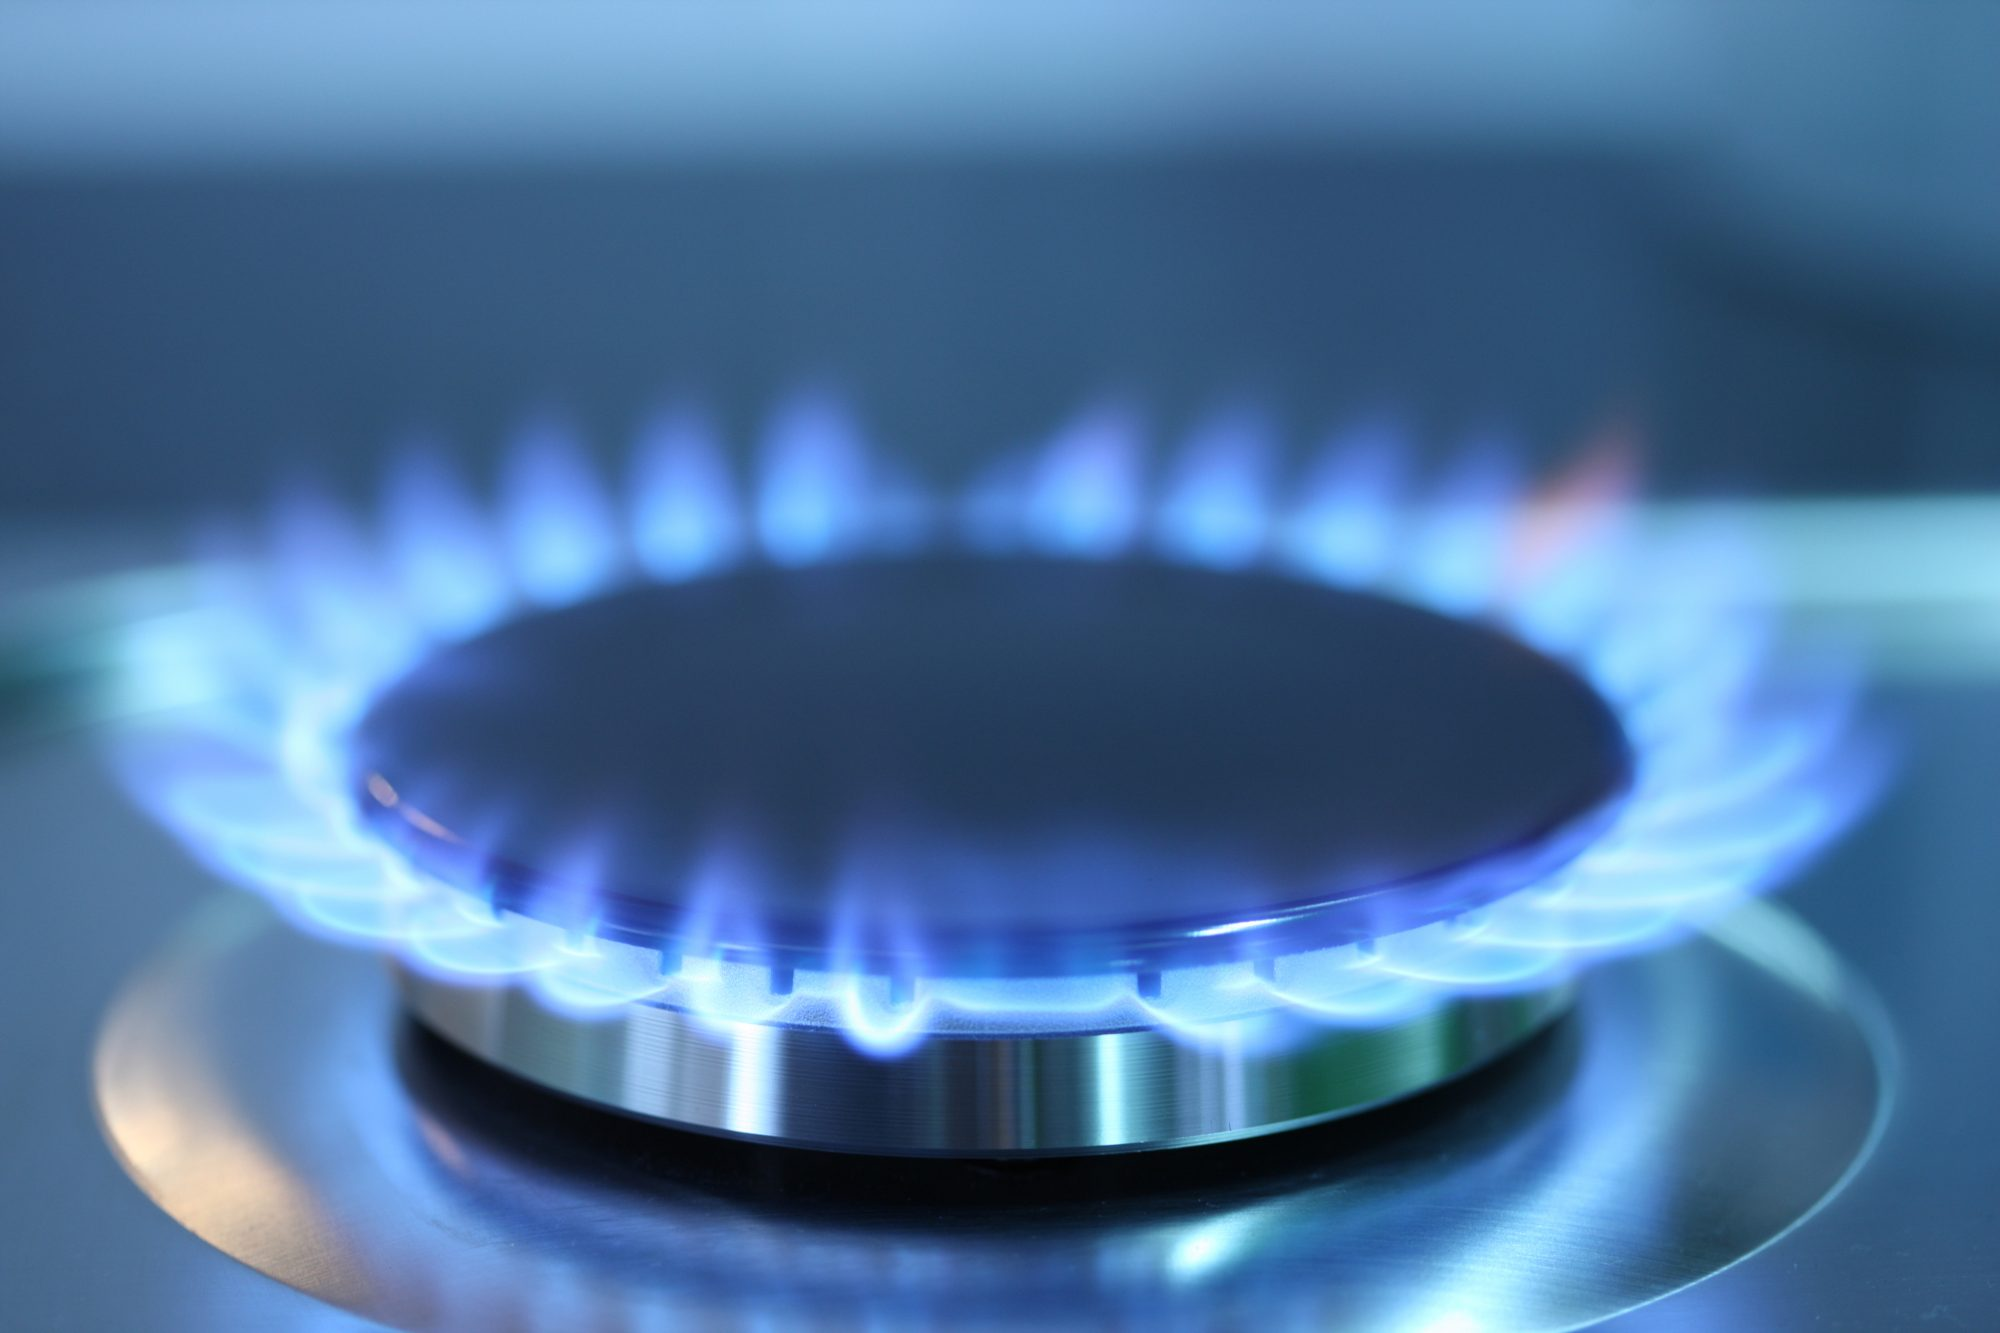 National Grid Gas fined £4m over missing gas network records